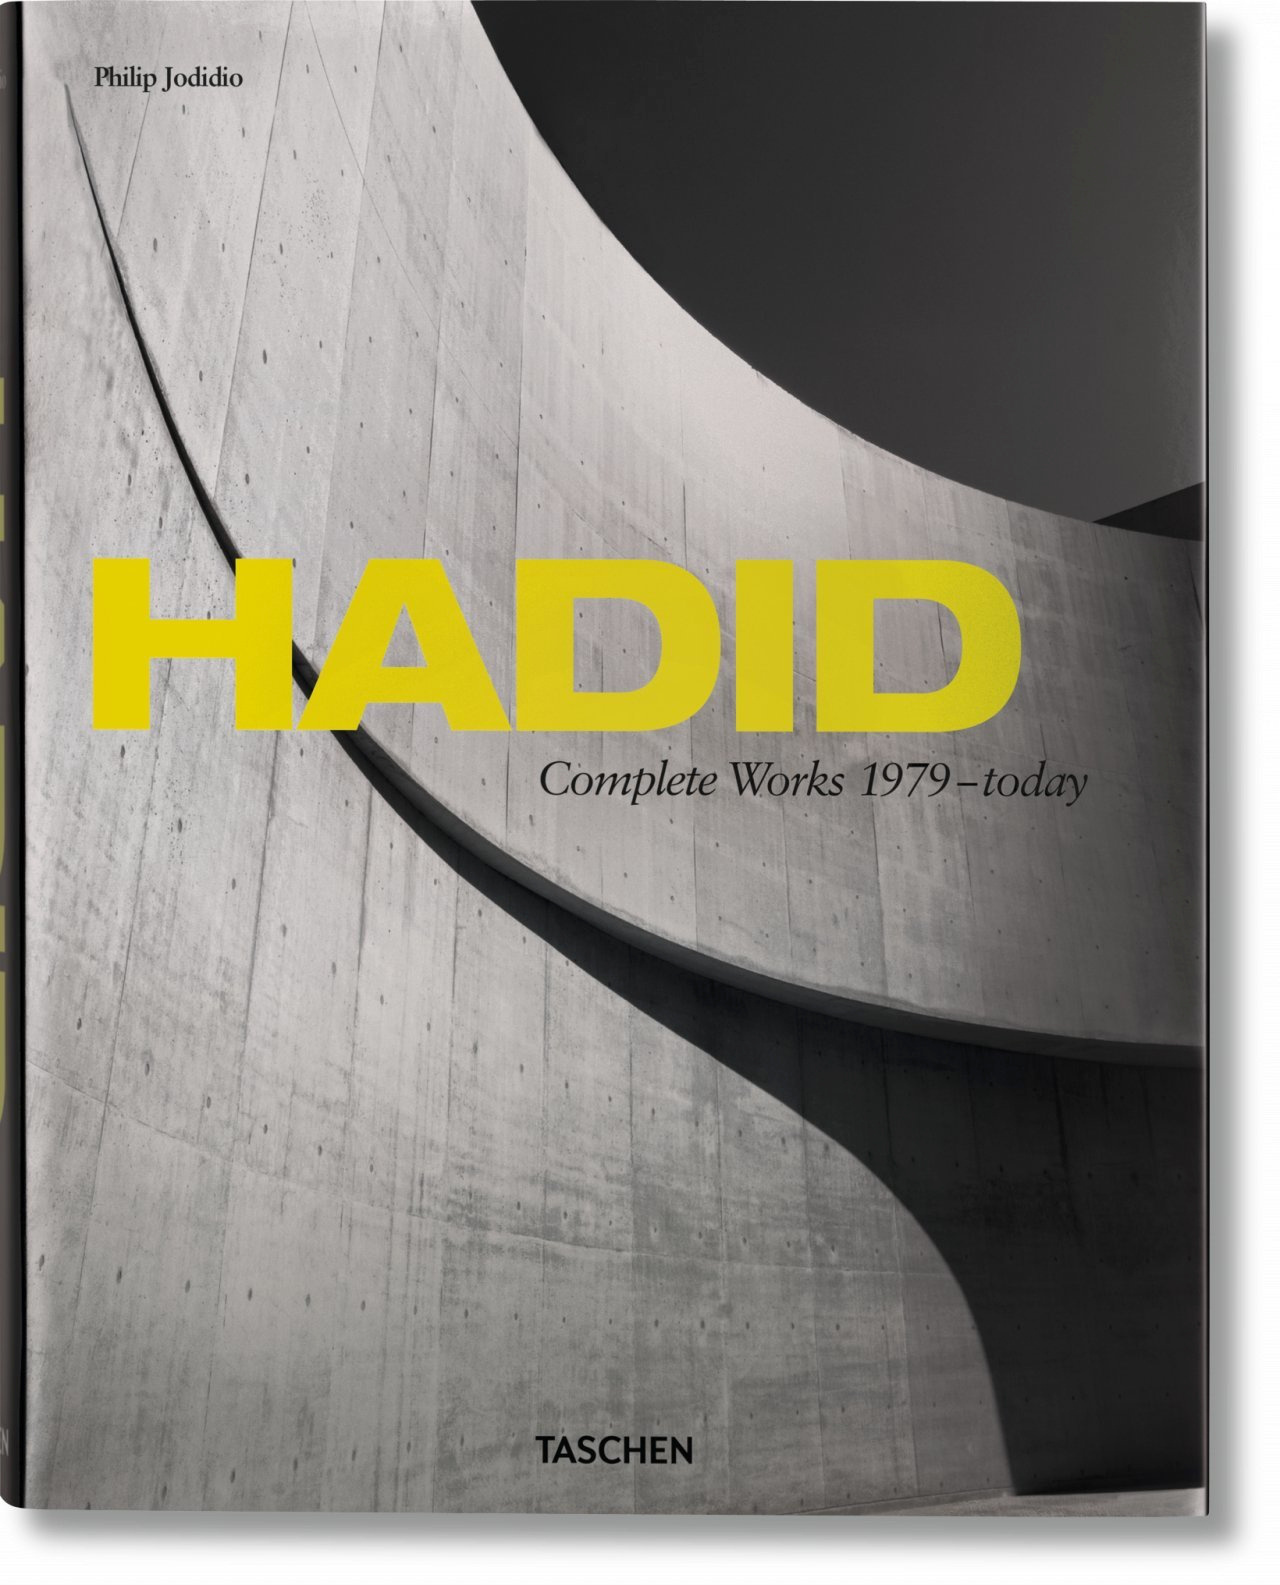 JU-HADID, UPDATED VERSION